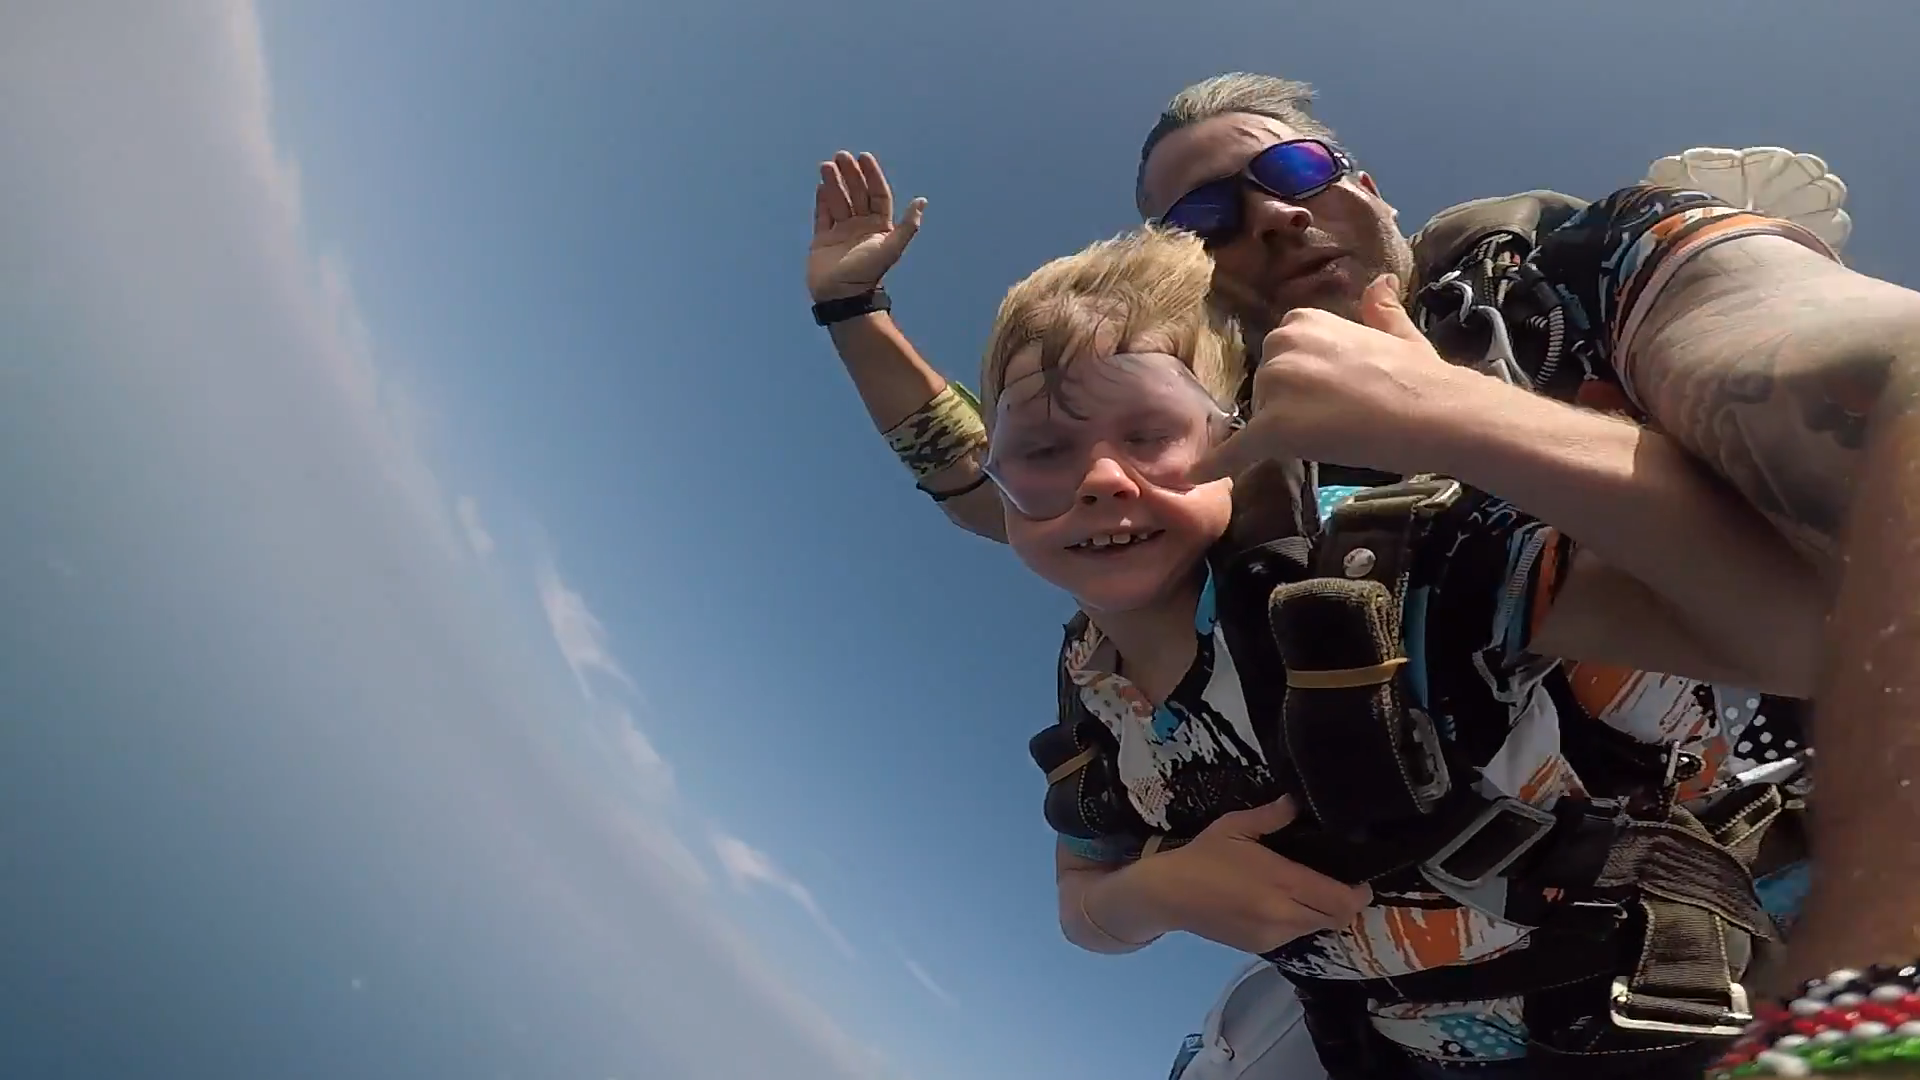 7 years old boy Skydiving in Tandem!!!